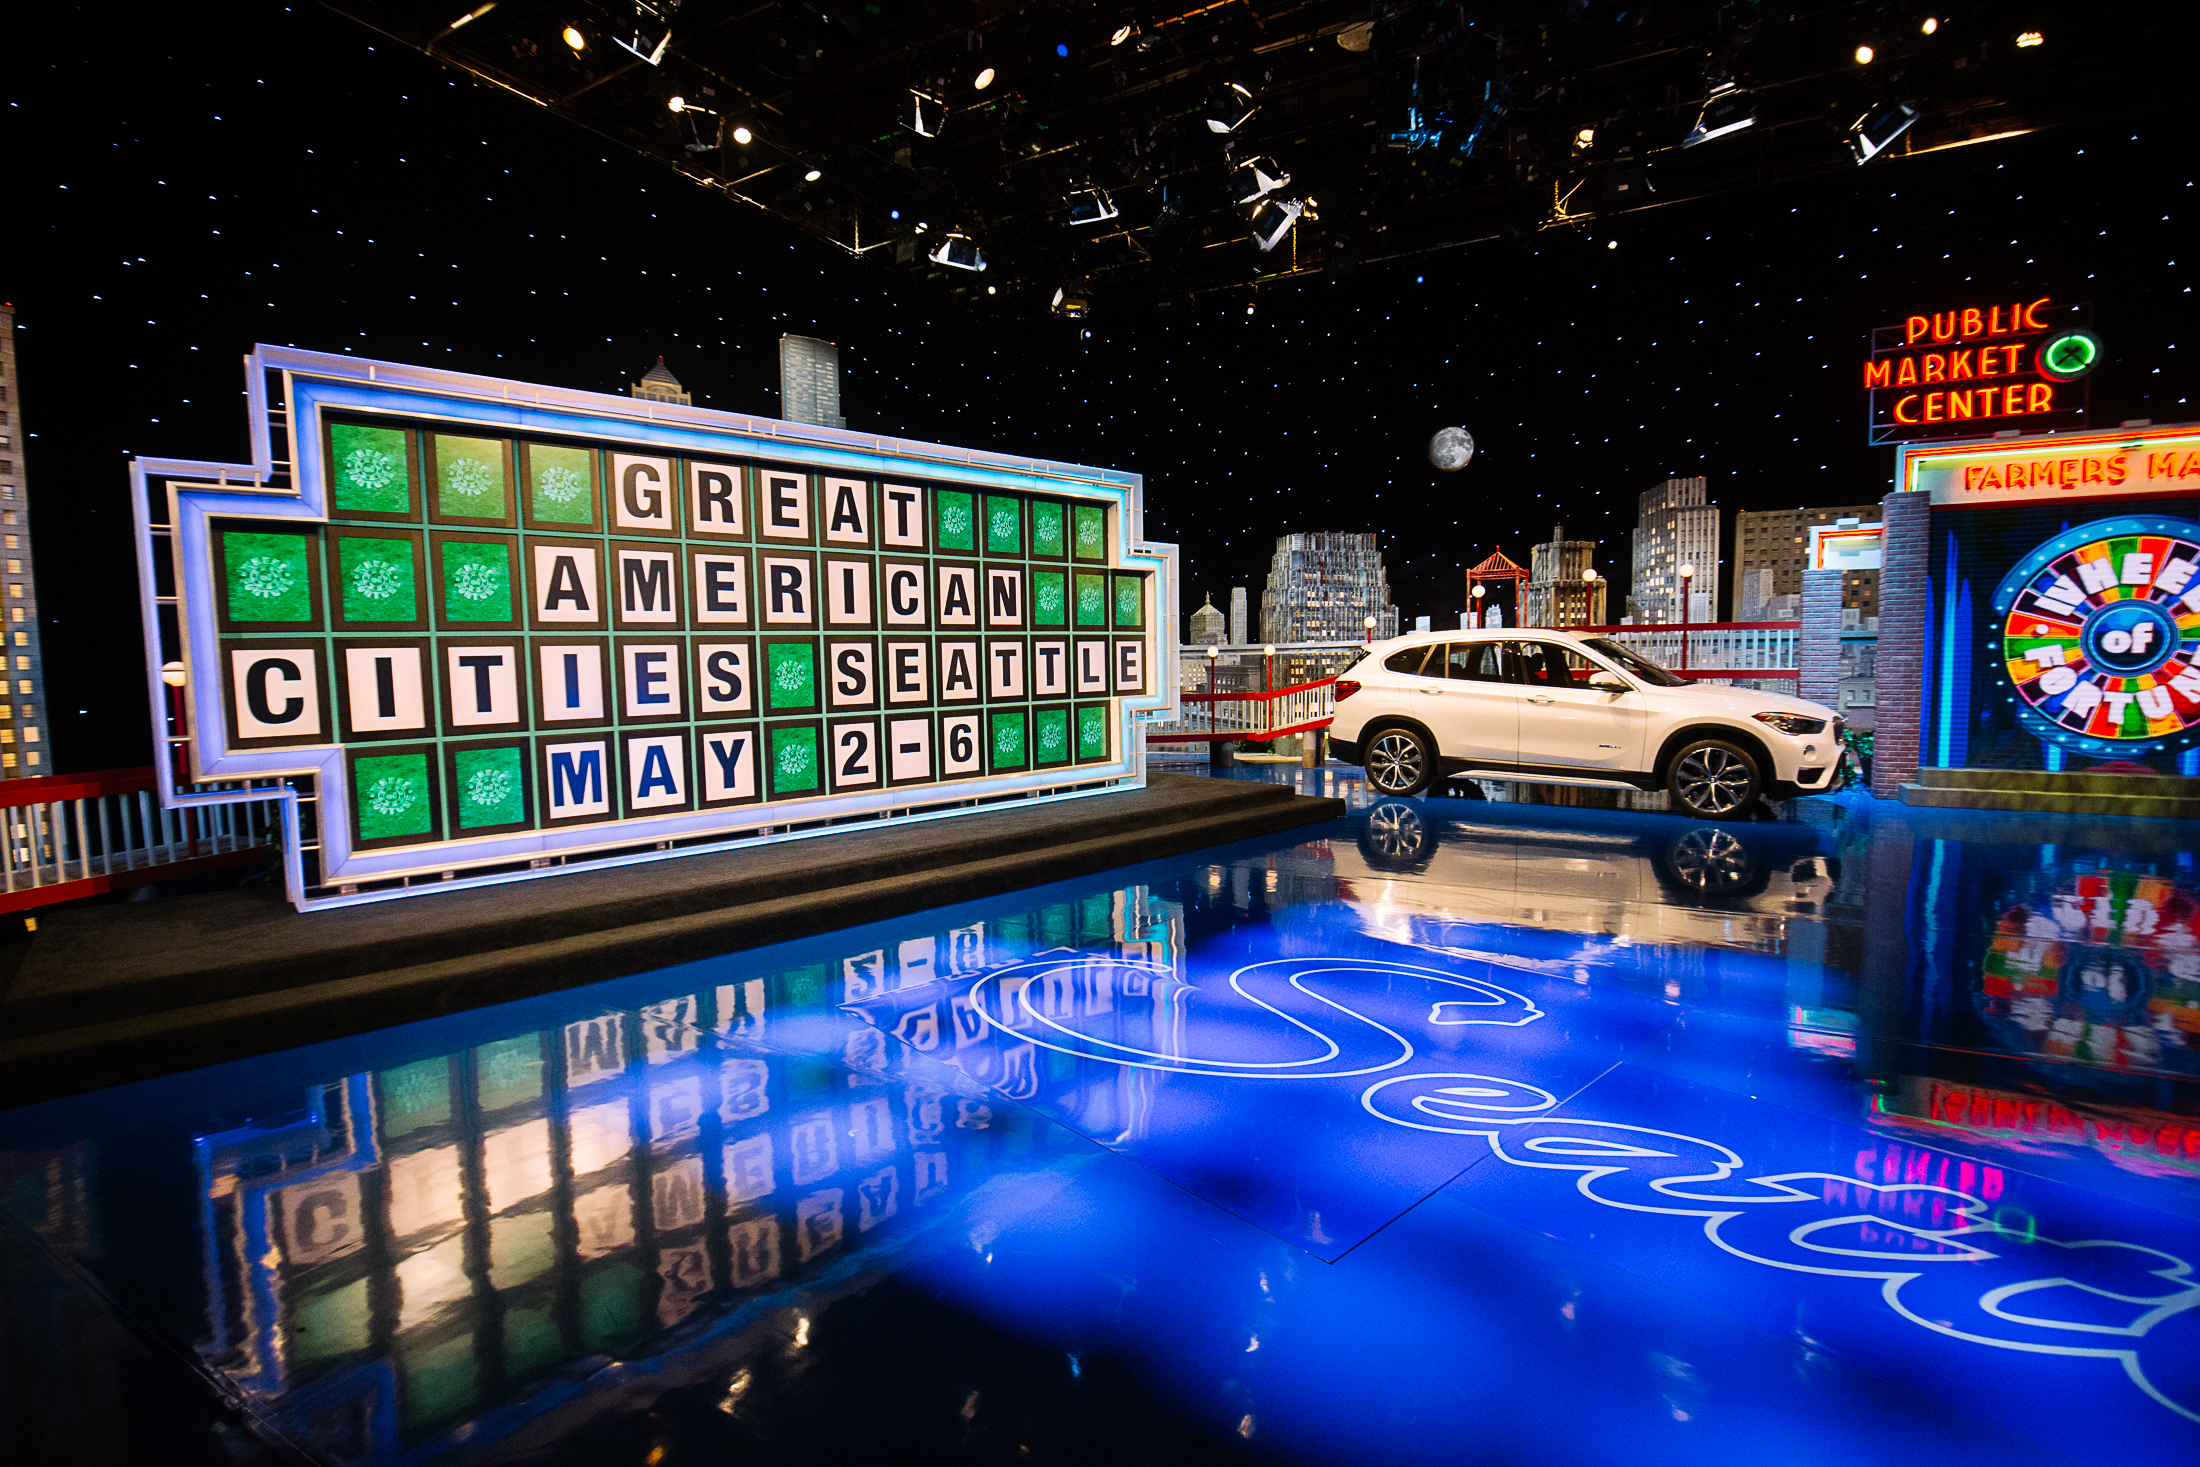 Wheel Of Fortune Gets Seattle Ized For Great American